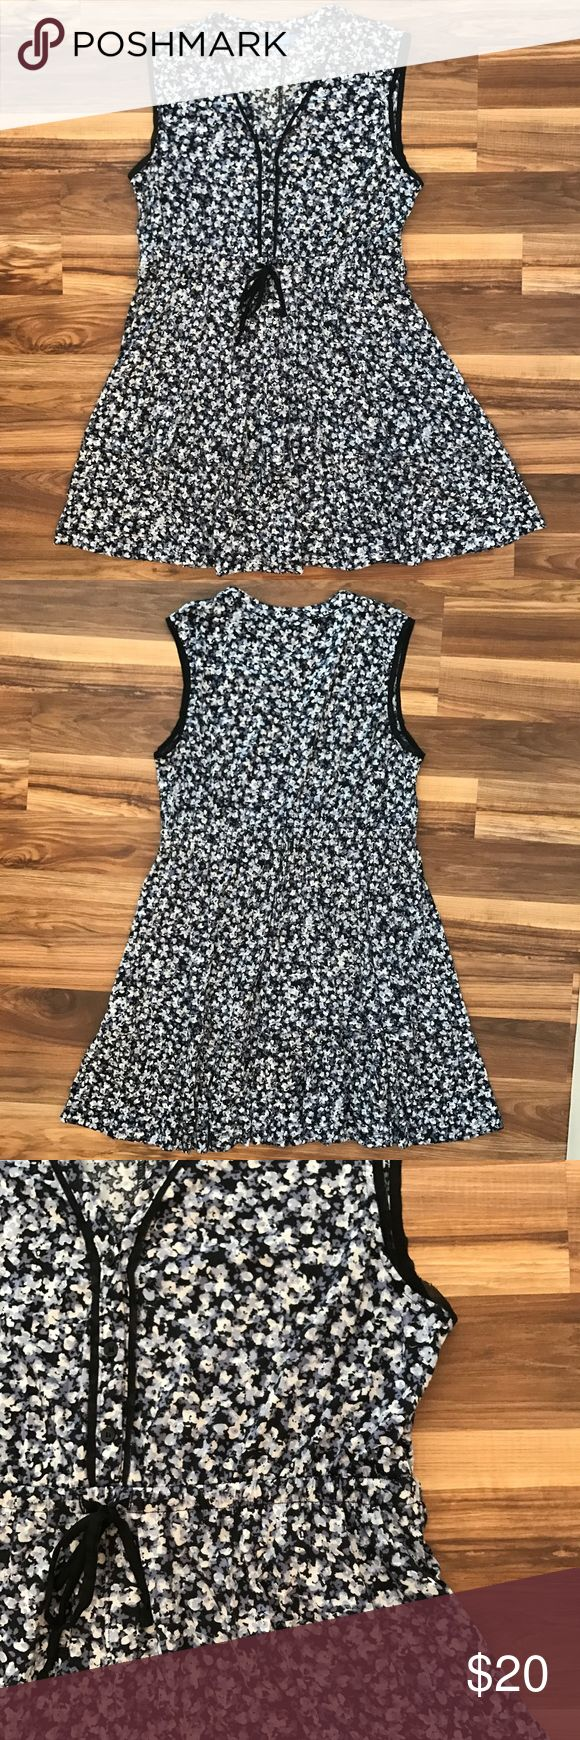 Simply Vera Vera Wang Floral Dress XL Simply Vera Vera Wang Floral Dress XL Simply Vera Vera Wang Dresses